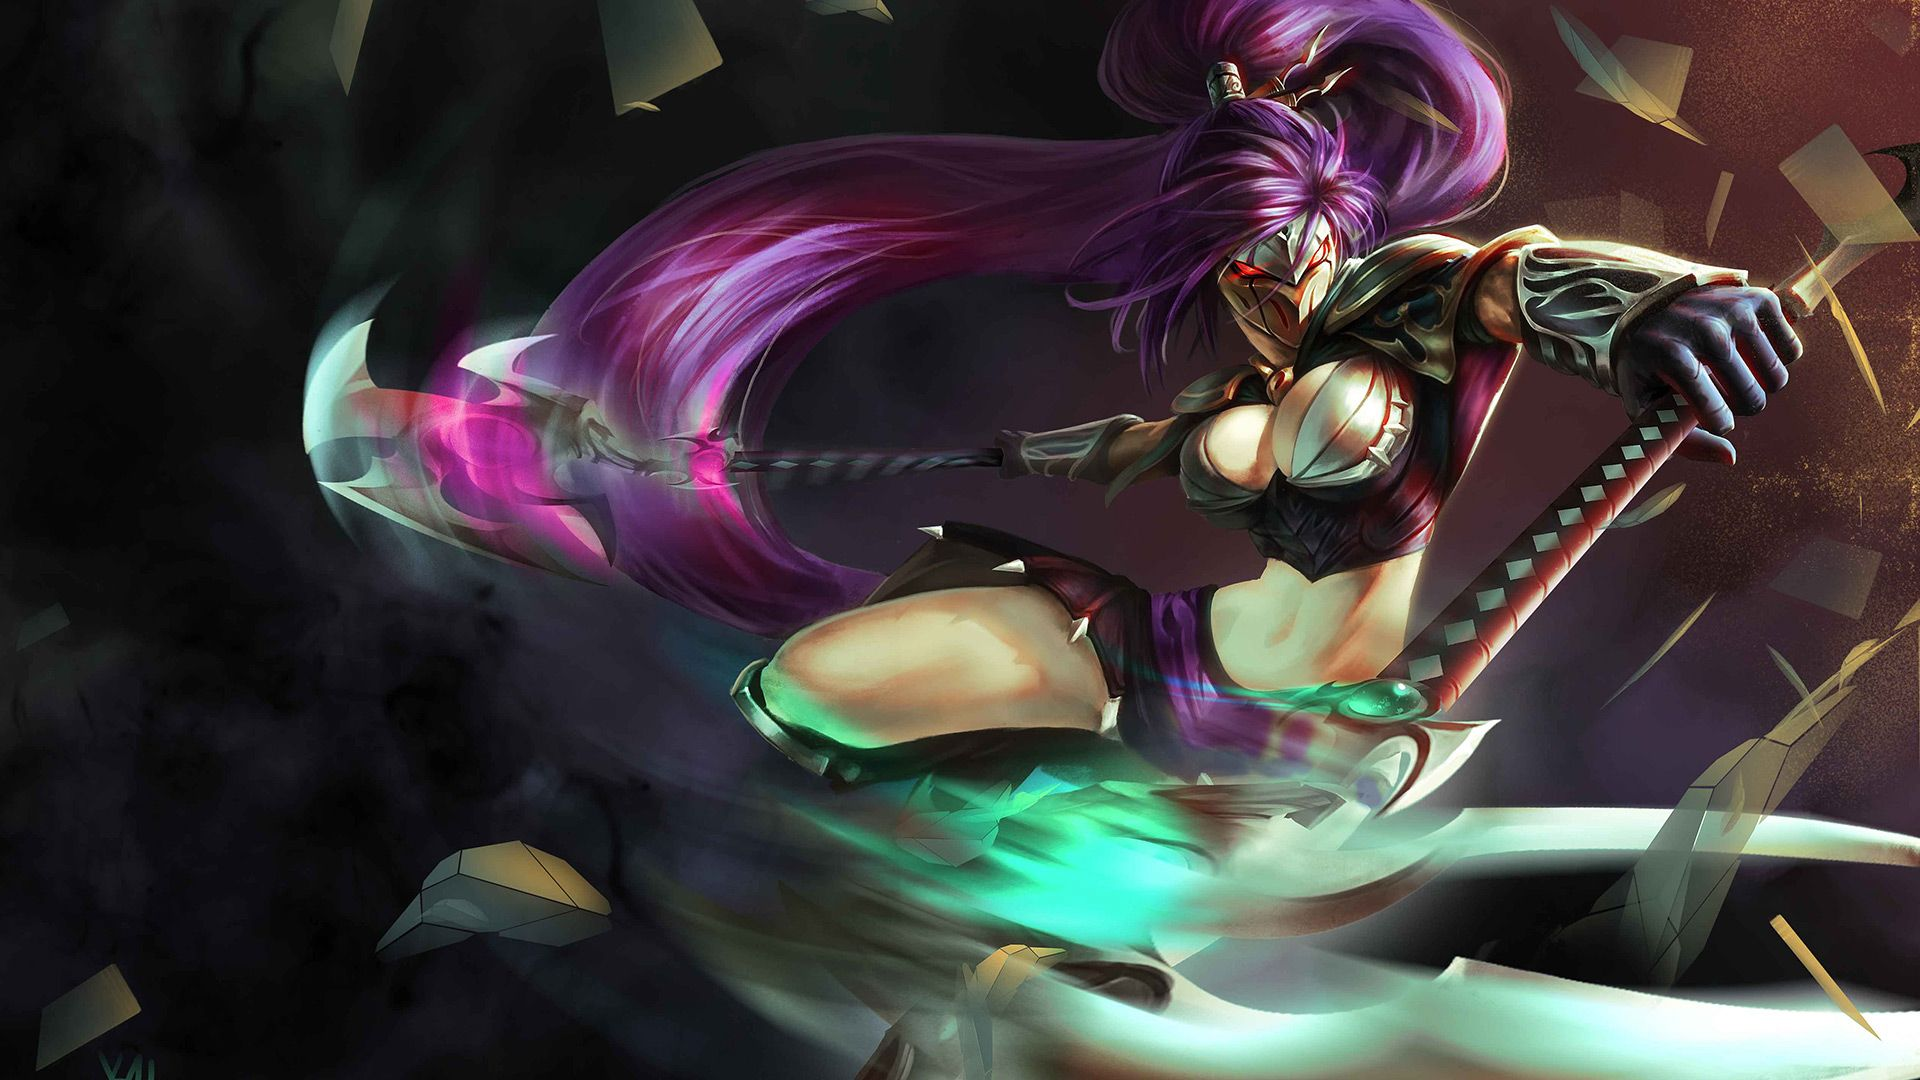 Download Wallpaper Fanart Trickster Akali Mask Skin Full HD On GameWalls